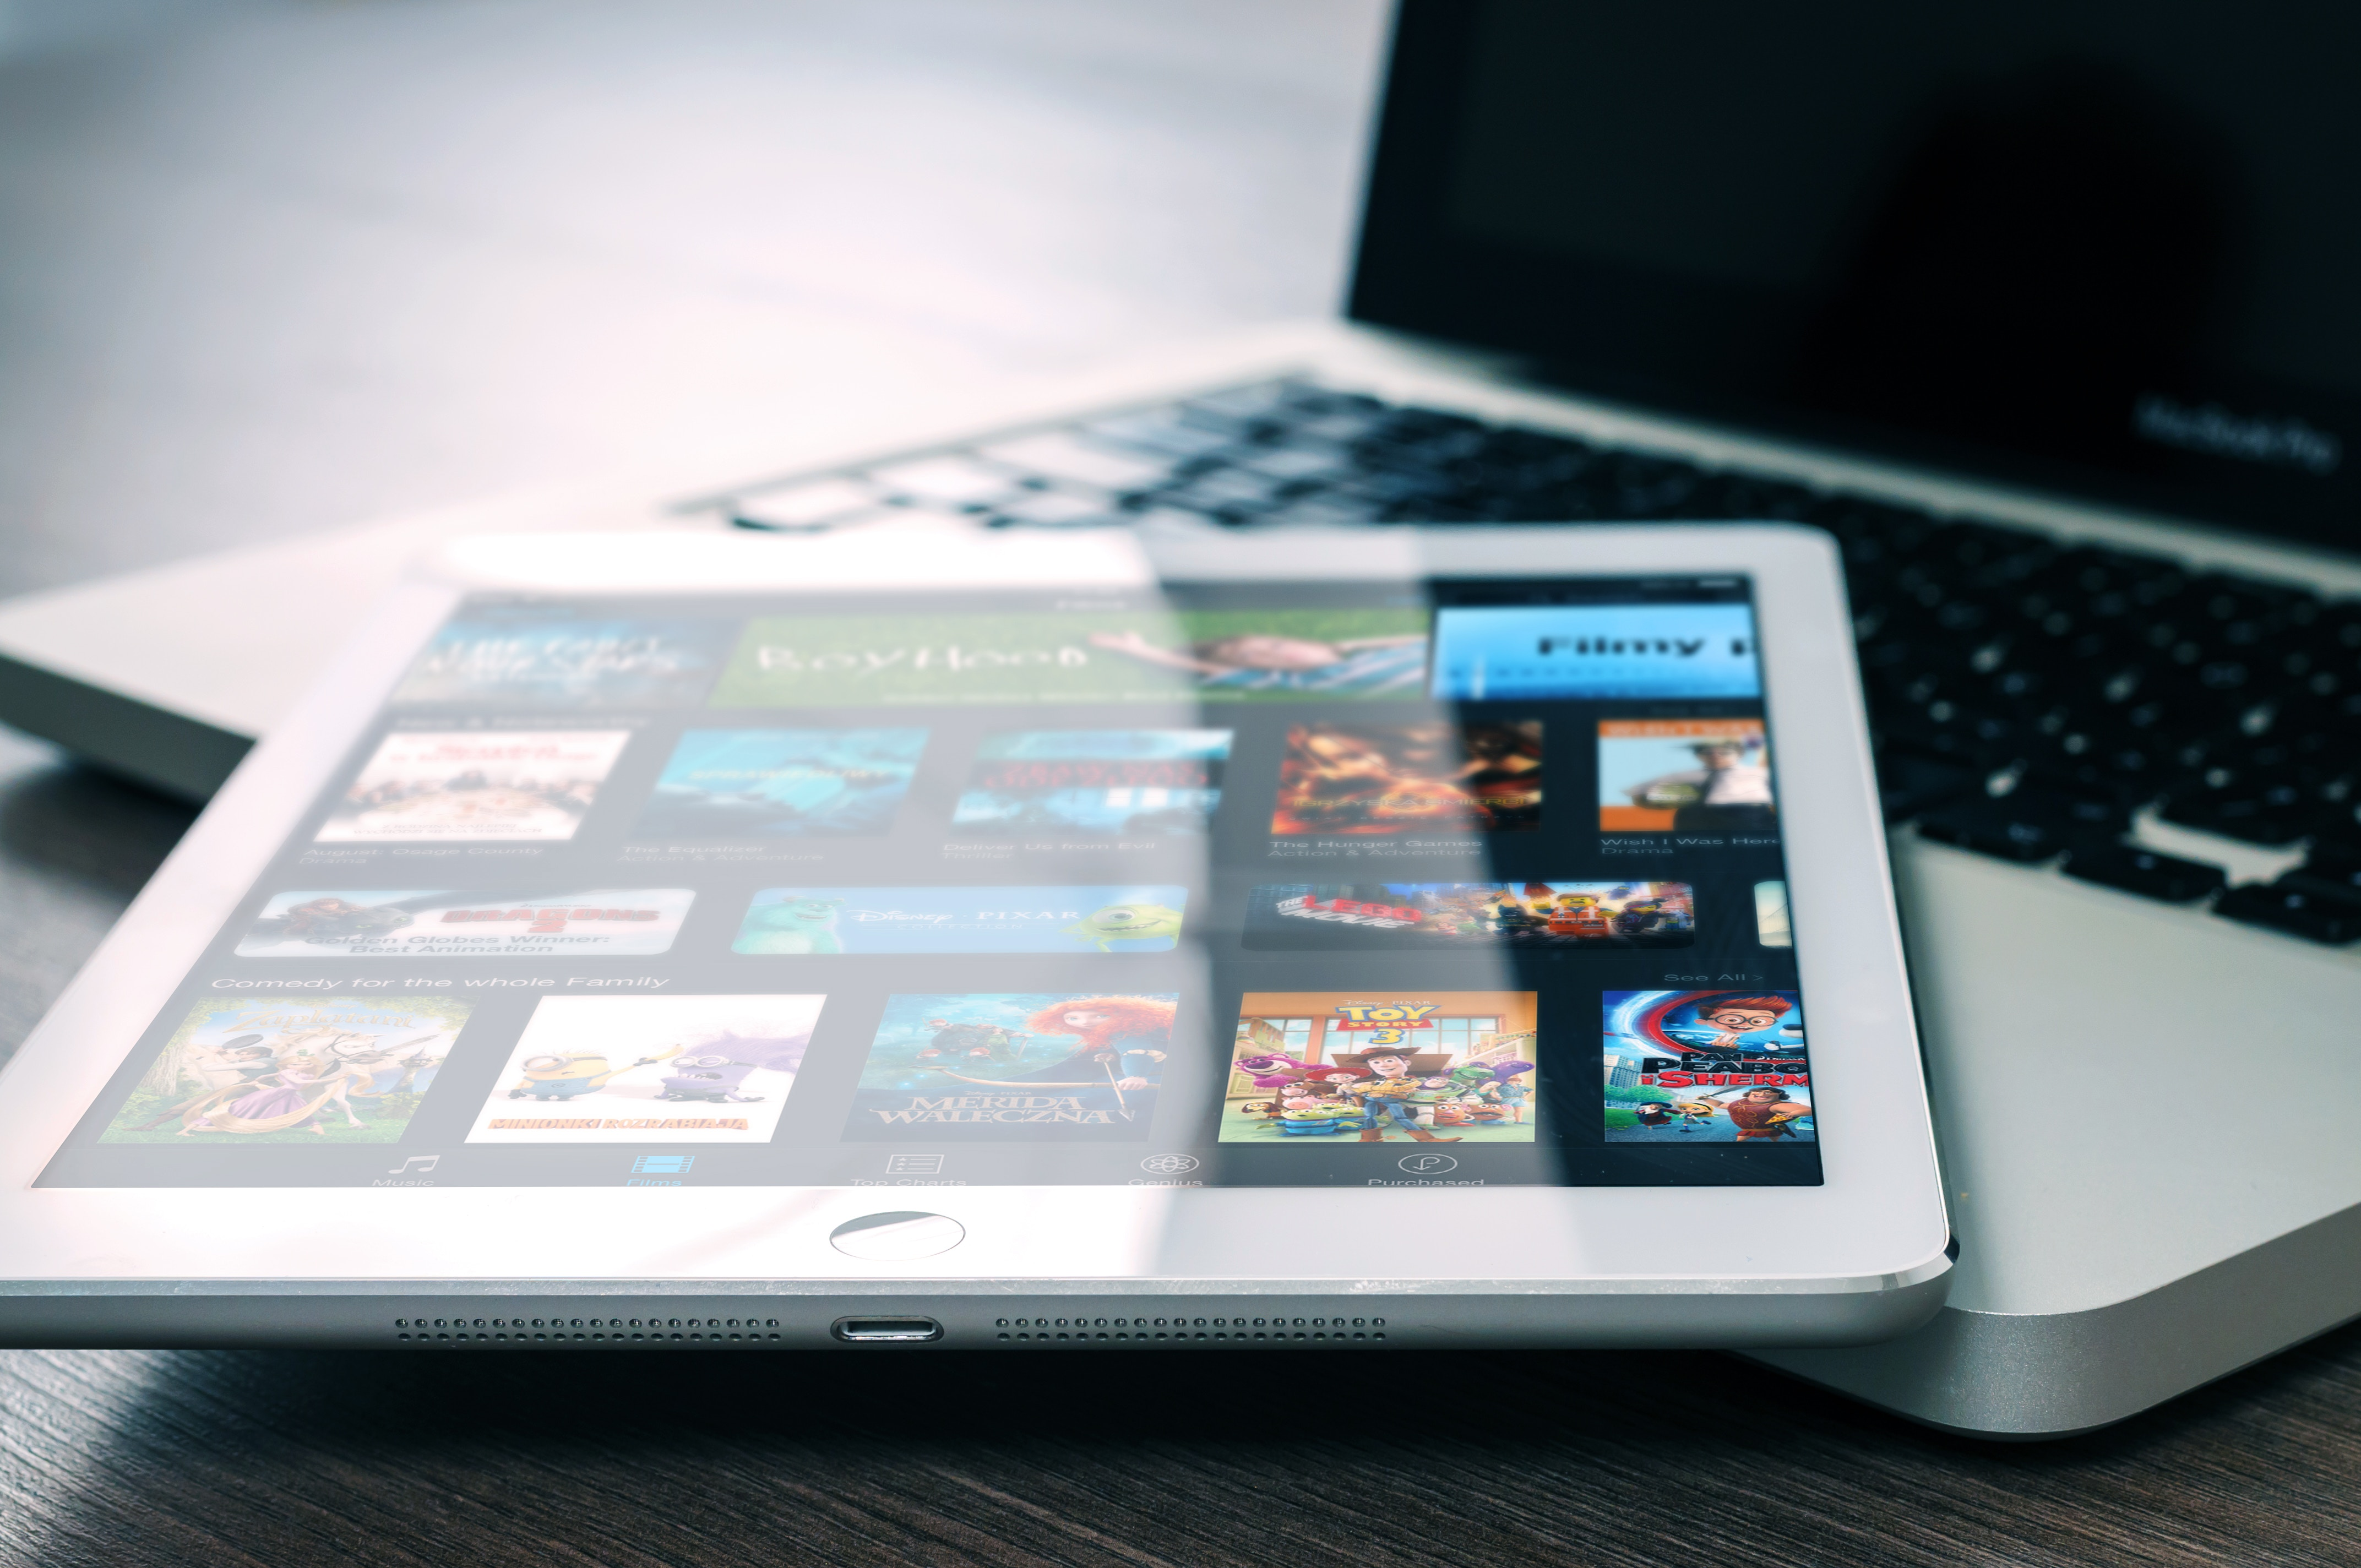 5 talking points about tablets